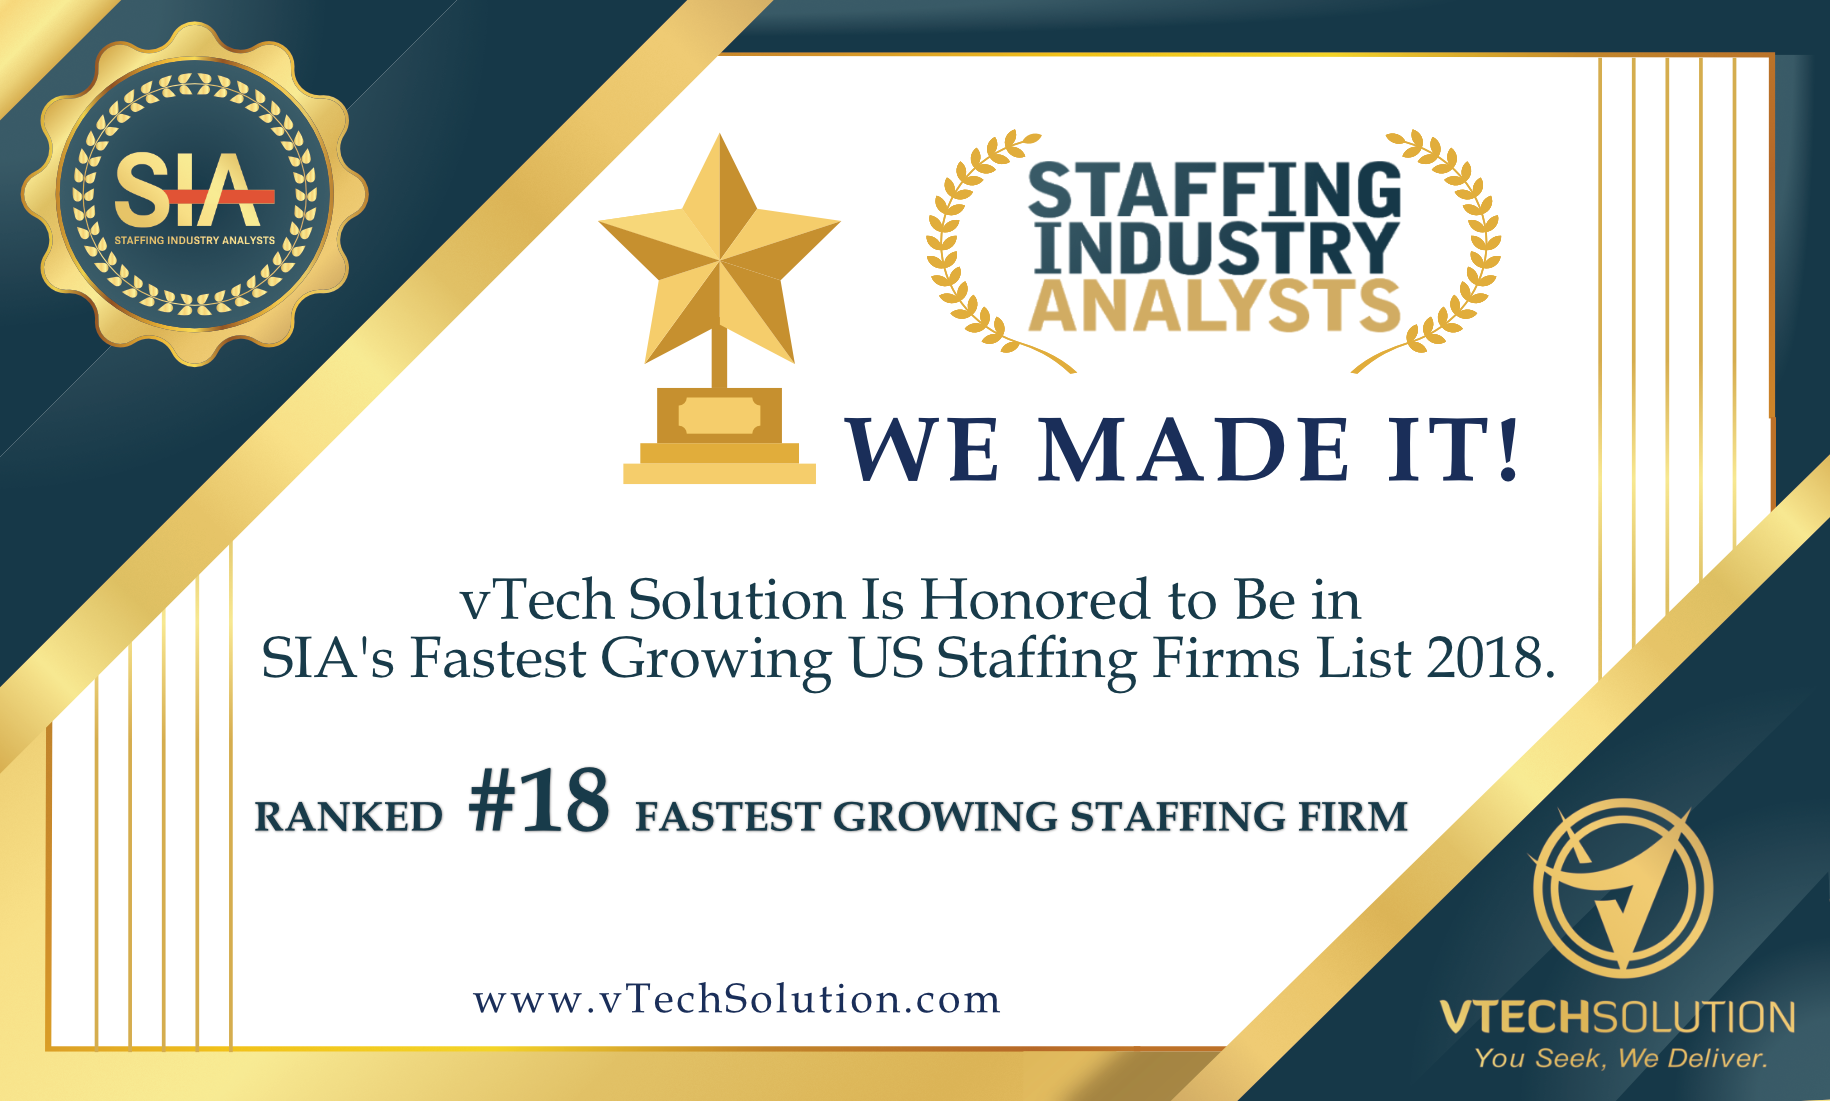 vTech has been ranked #18 in SIA's Fastest Growing Companies